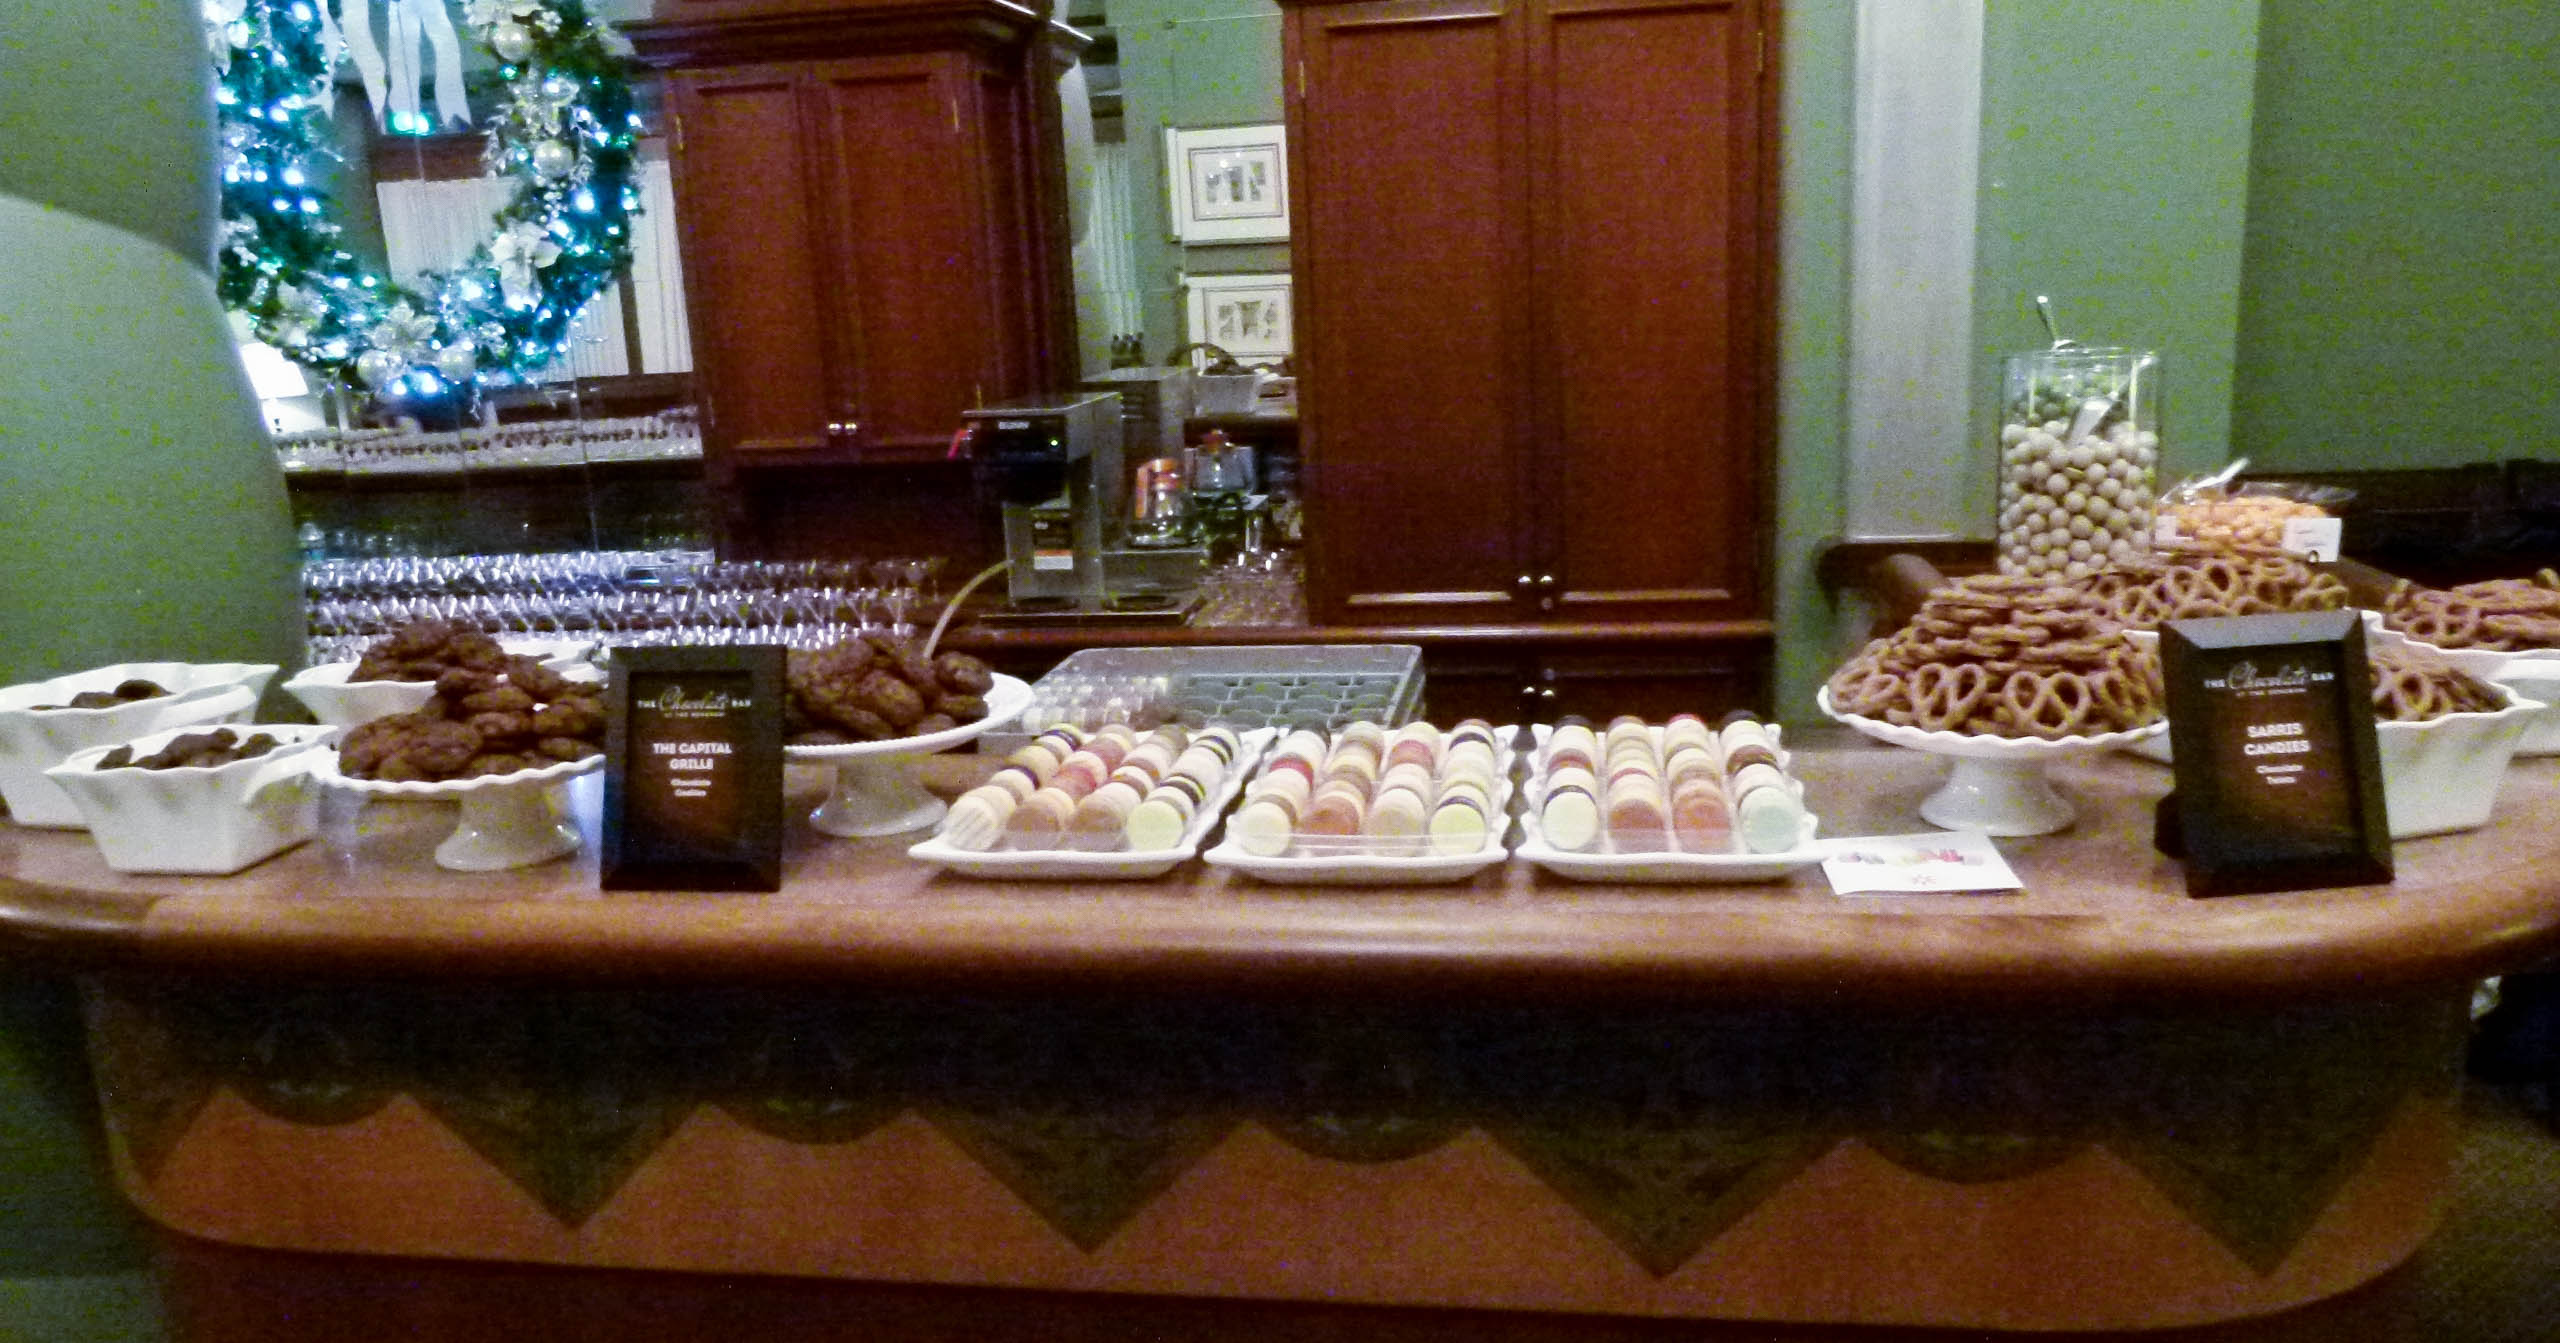 Other treats on the rest of the Circles Lounge bar.